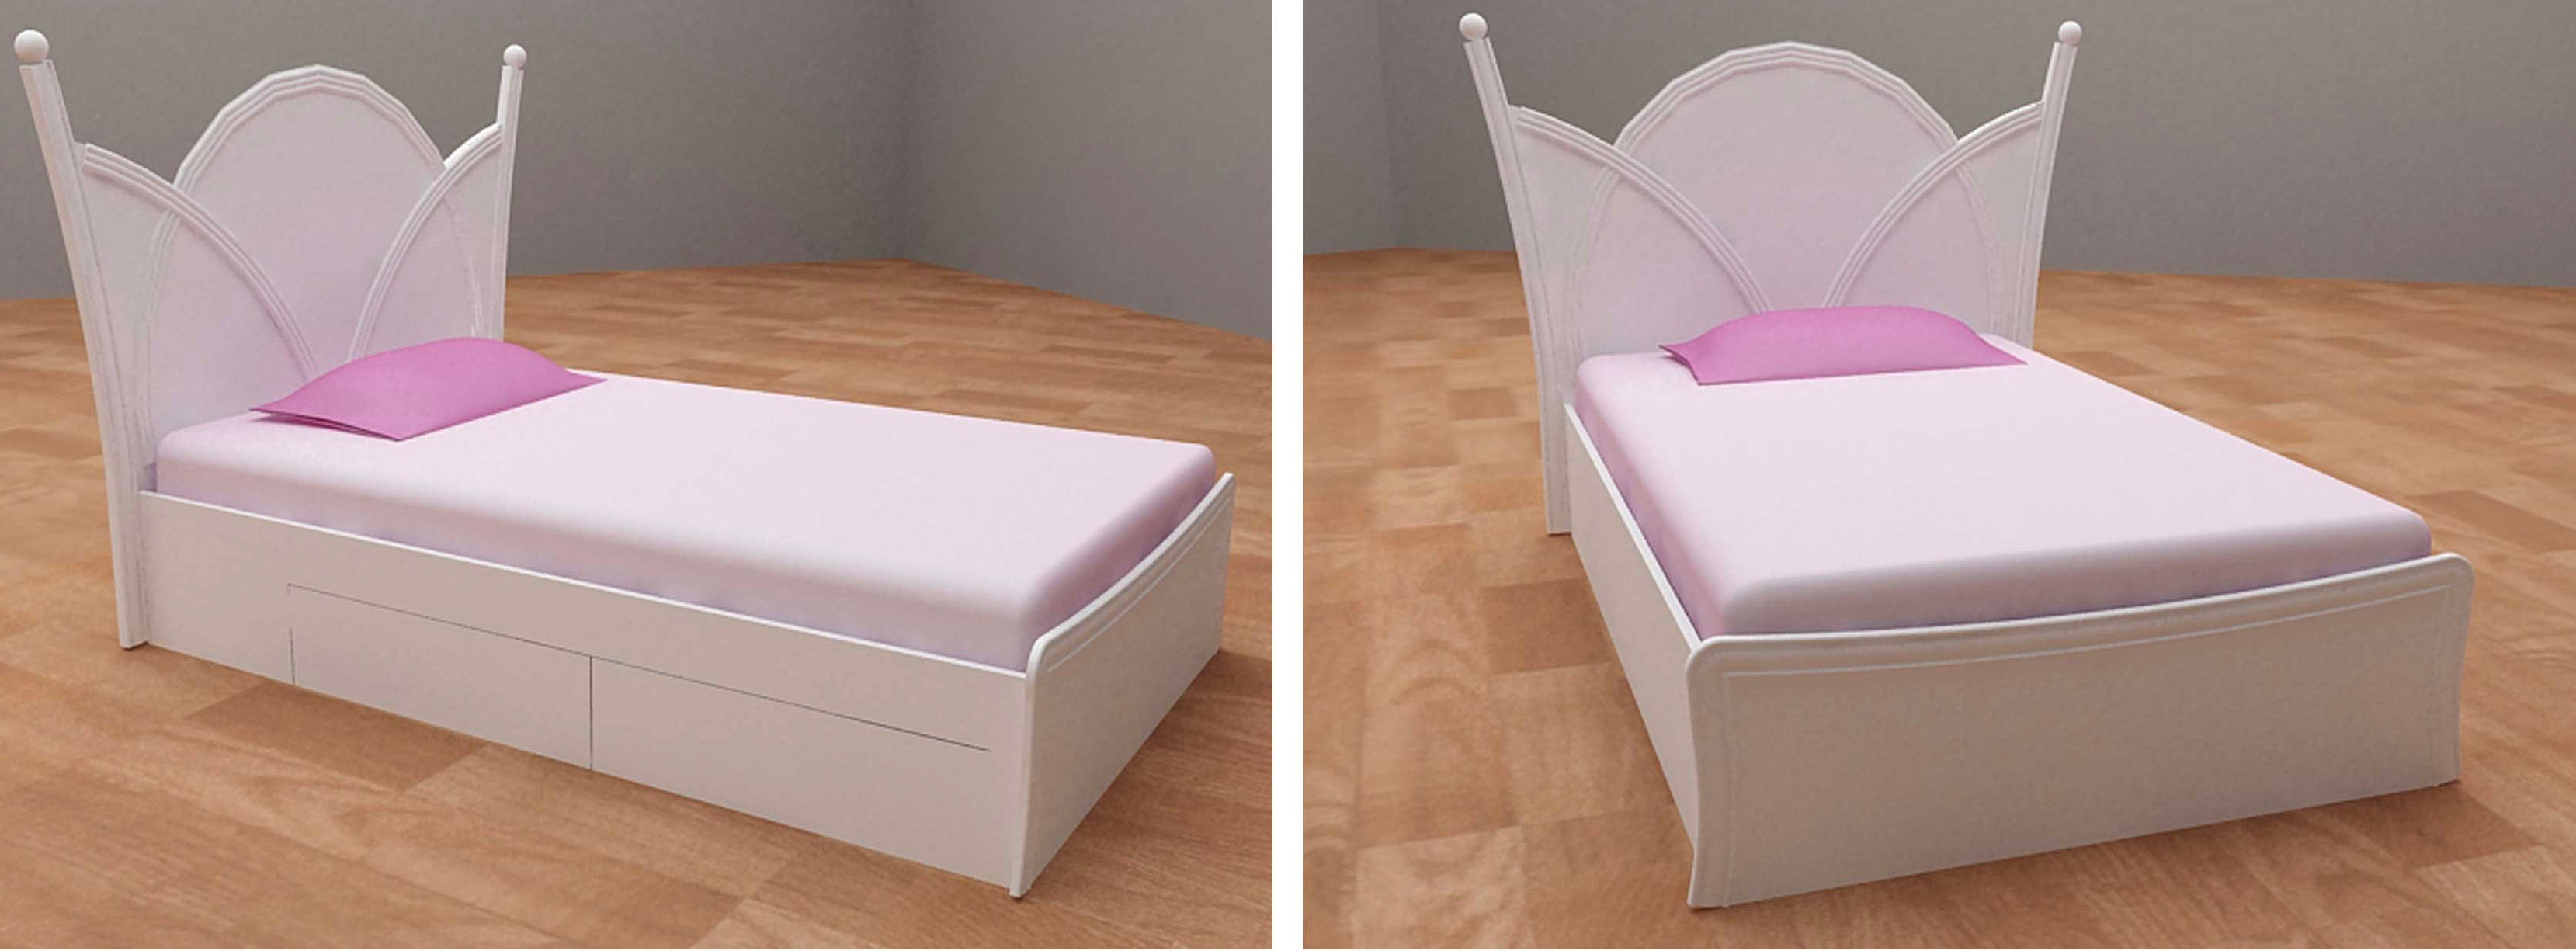 Bed Set with Unique Head Rest | Niaga Art